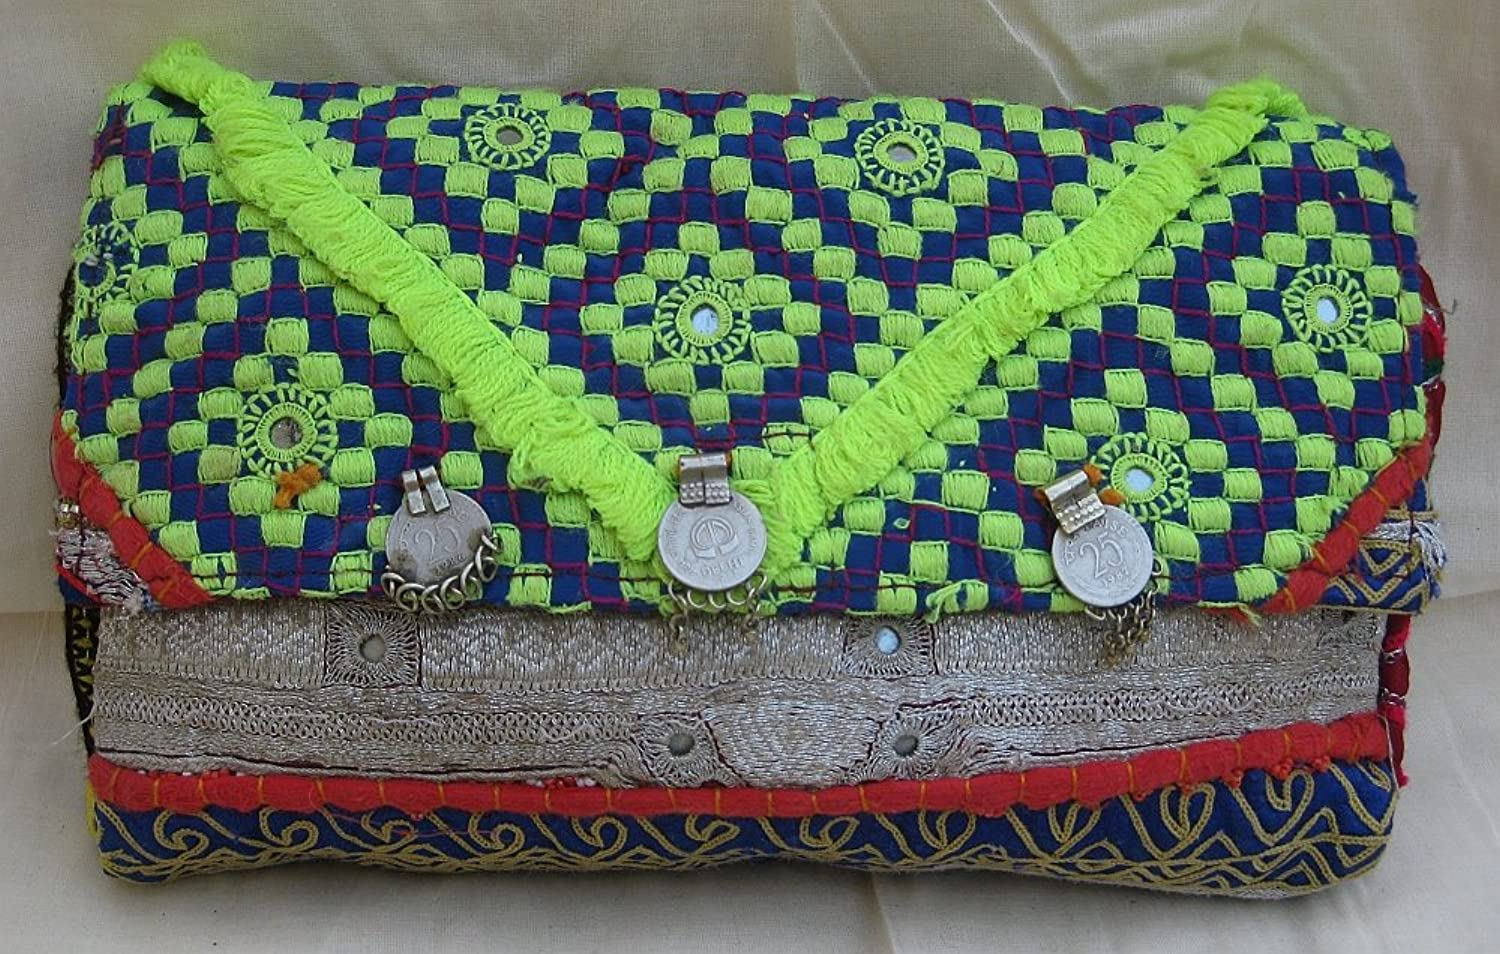 Jaipur Forever Women's Vintage Sari Fabric Clutch Bags- Clutch Bags At Online